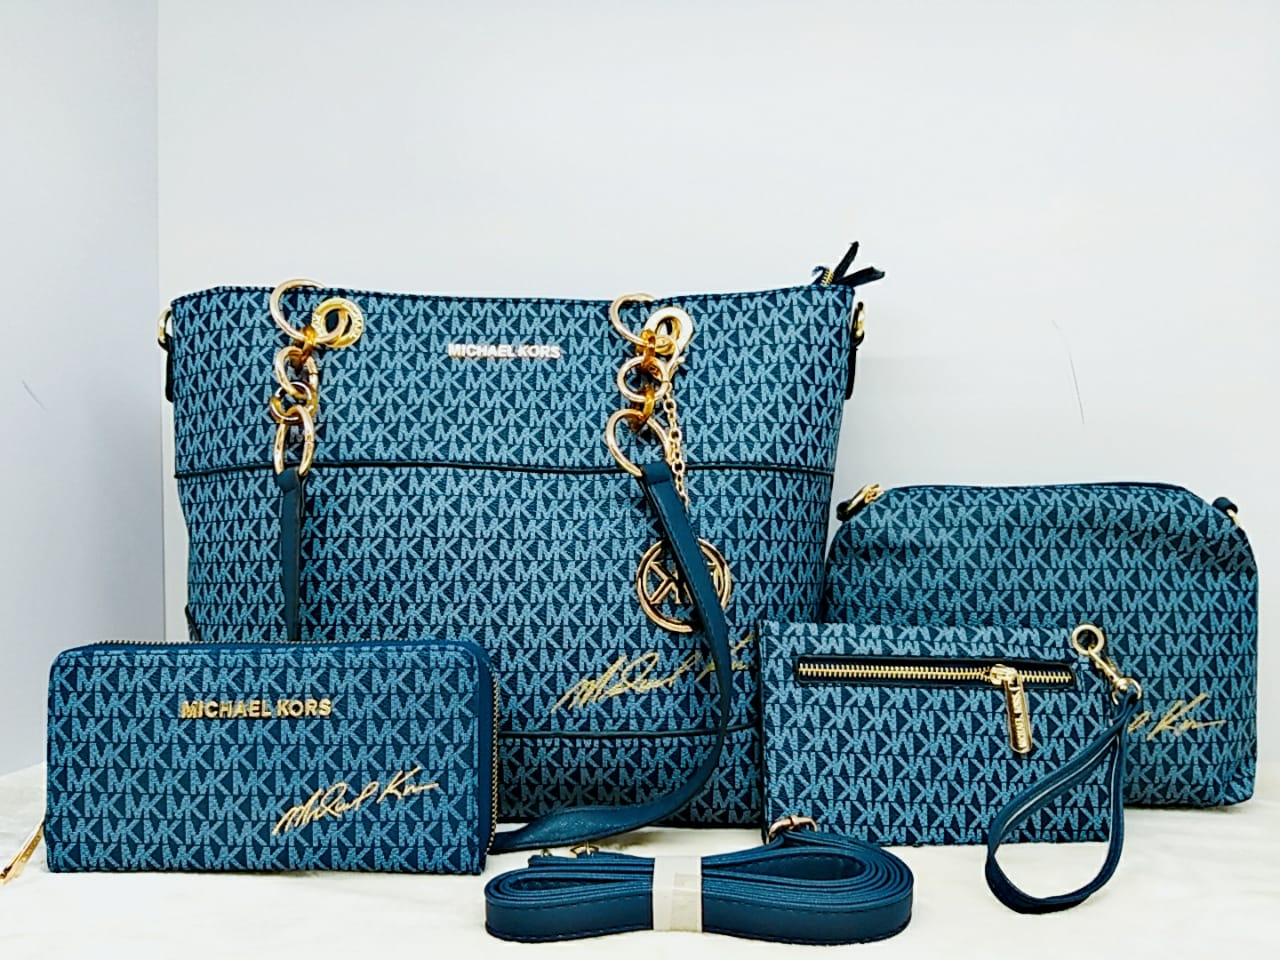 Michael Kors Bags Set - Liquidation Cart